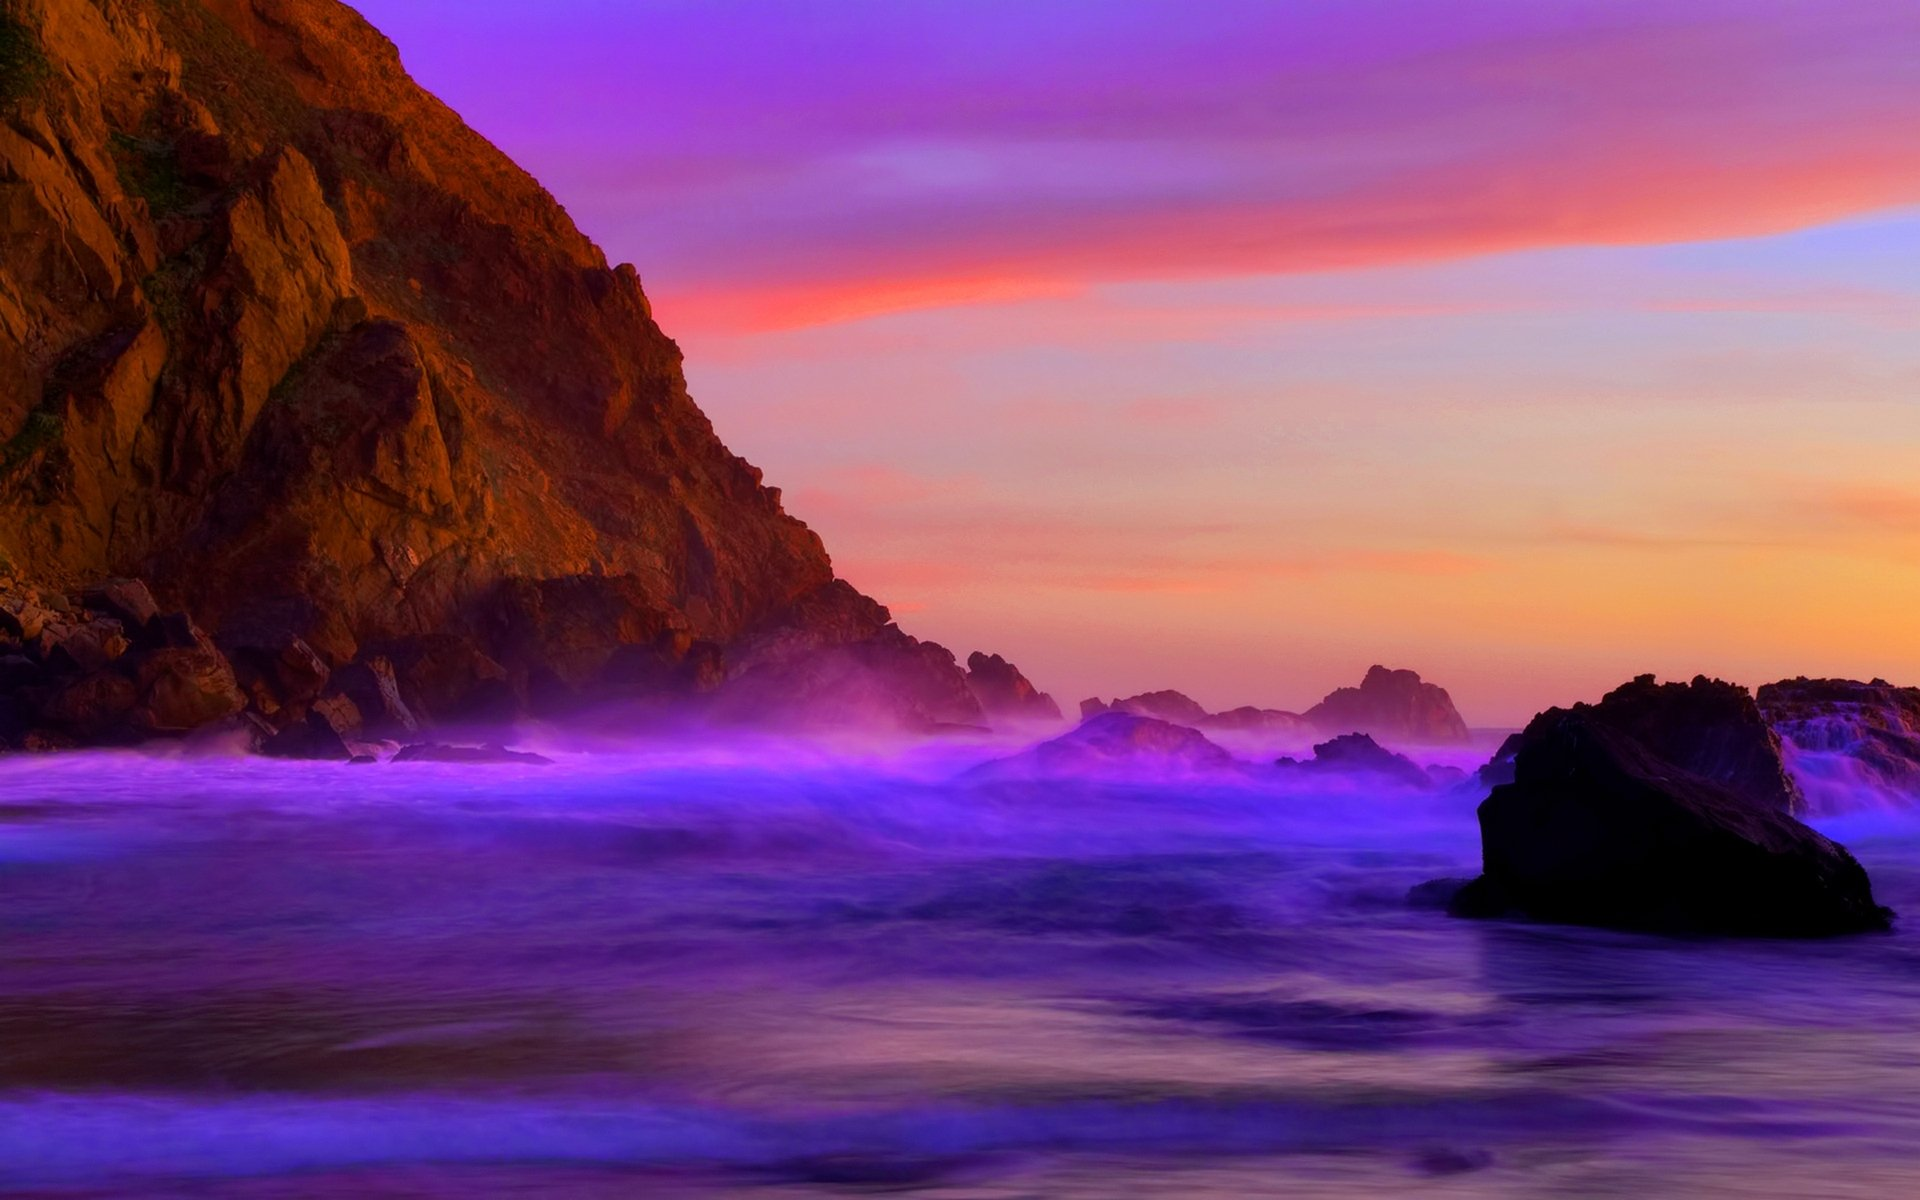 Earth - Ocean  Purple Blue Rock Sea Coastline Shore Shoreline Cliff Scenic Wallpaper